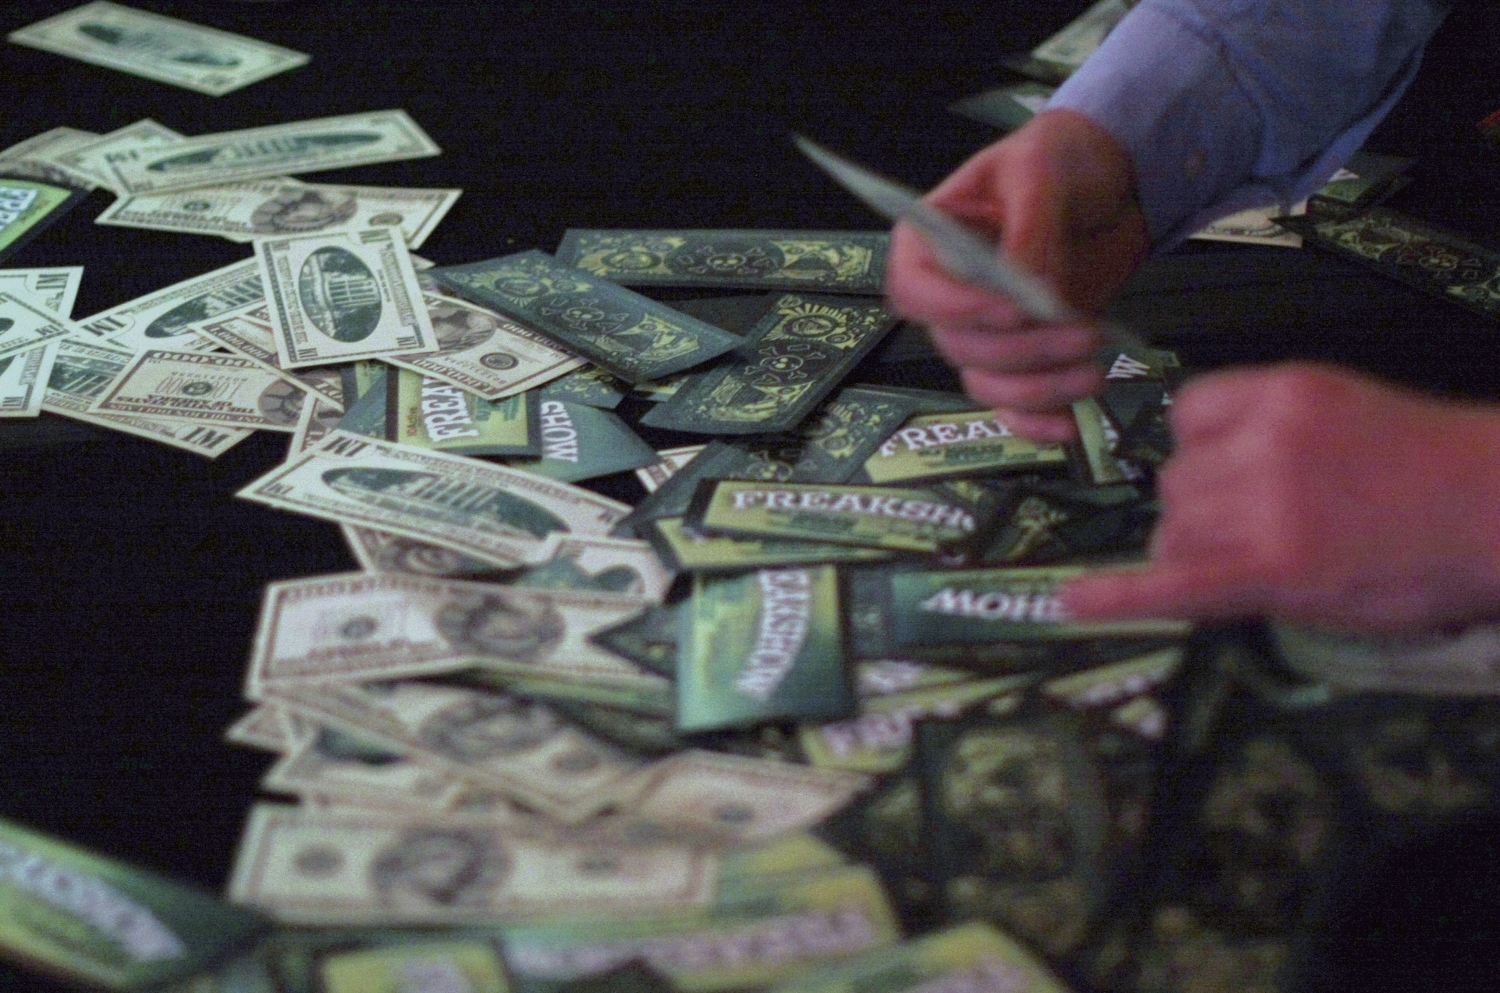 Black Hat 2010 attendees grab wads of fake money spewed out by an ATM machine hacked by Barnaby Jack.